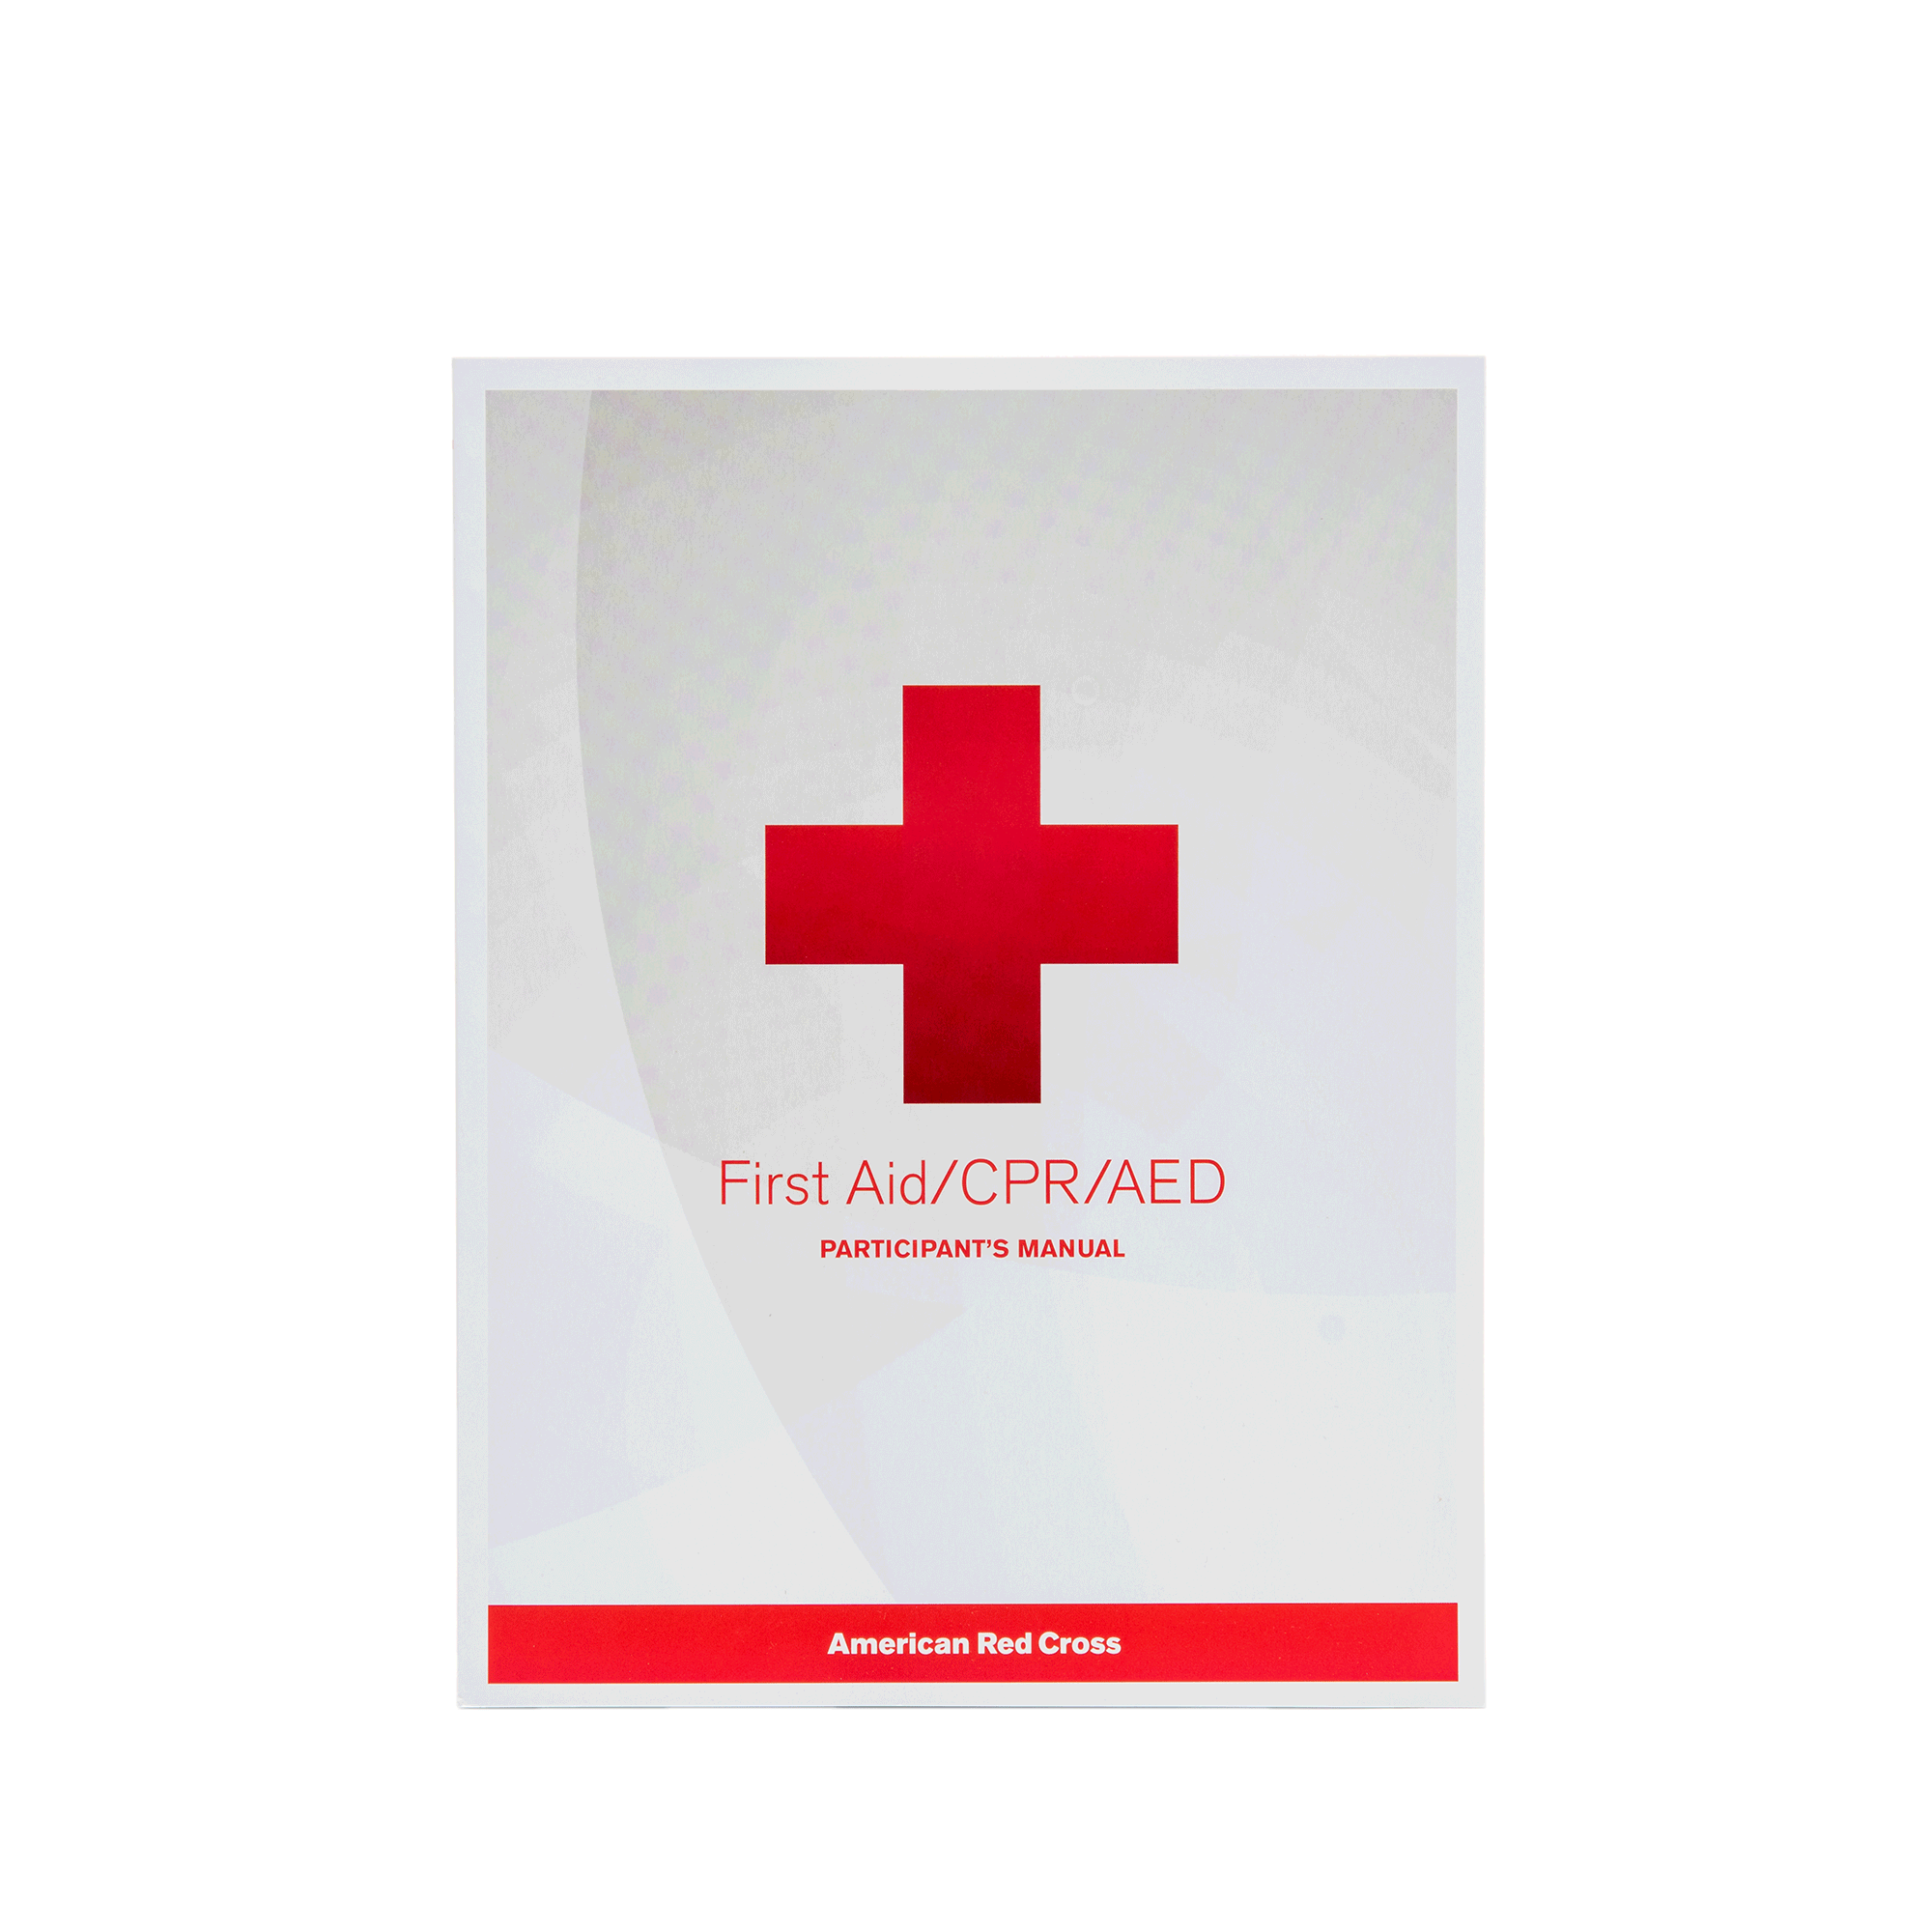 first aid cpr aed participant s manual red cross store rh redcross org YMCA Lifeguard Training Course red cross lifeguard manual 2014 pdf download